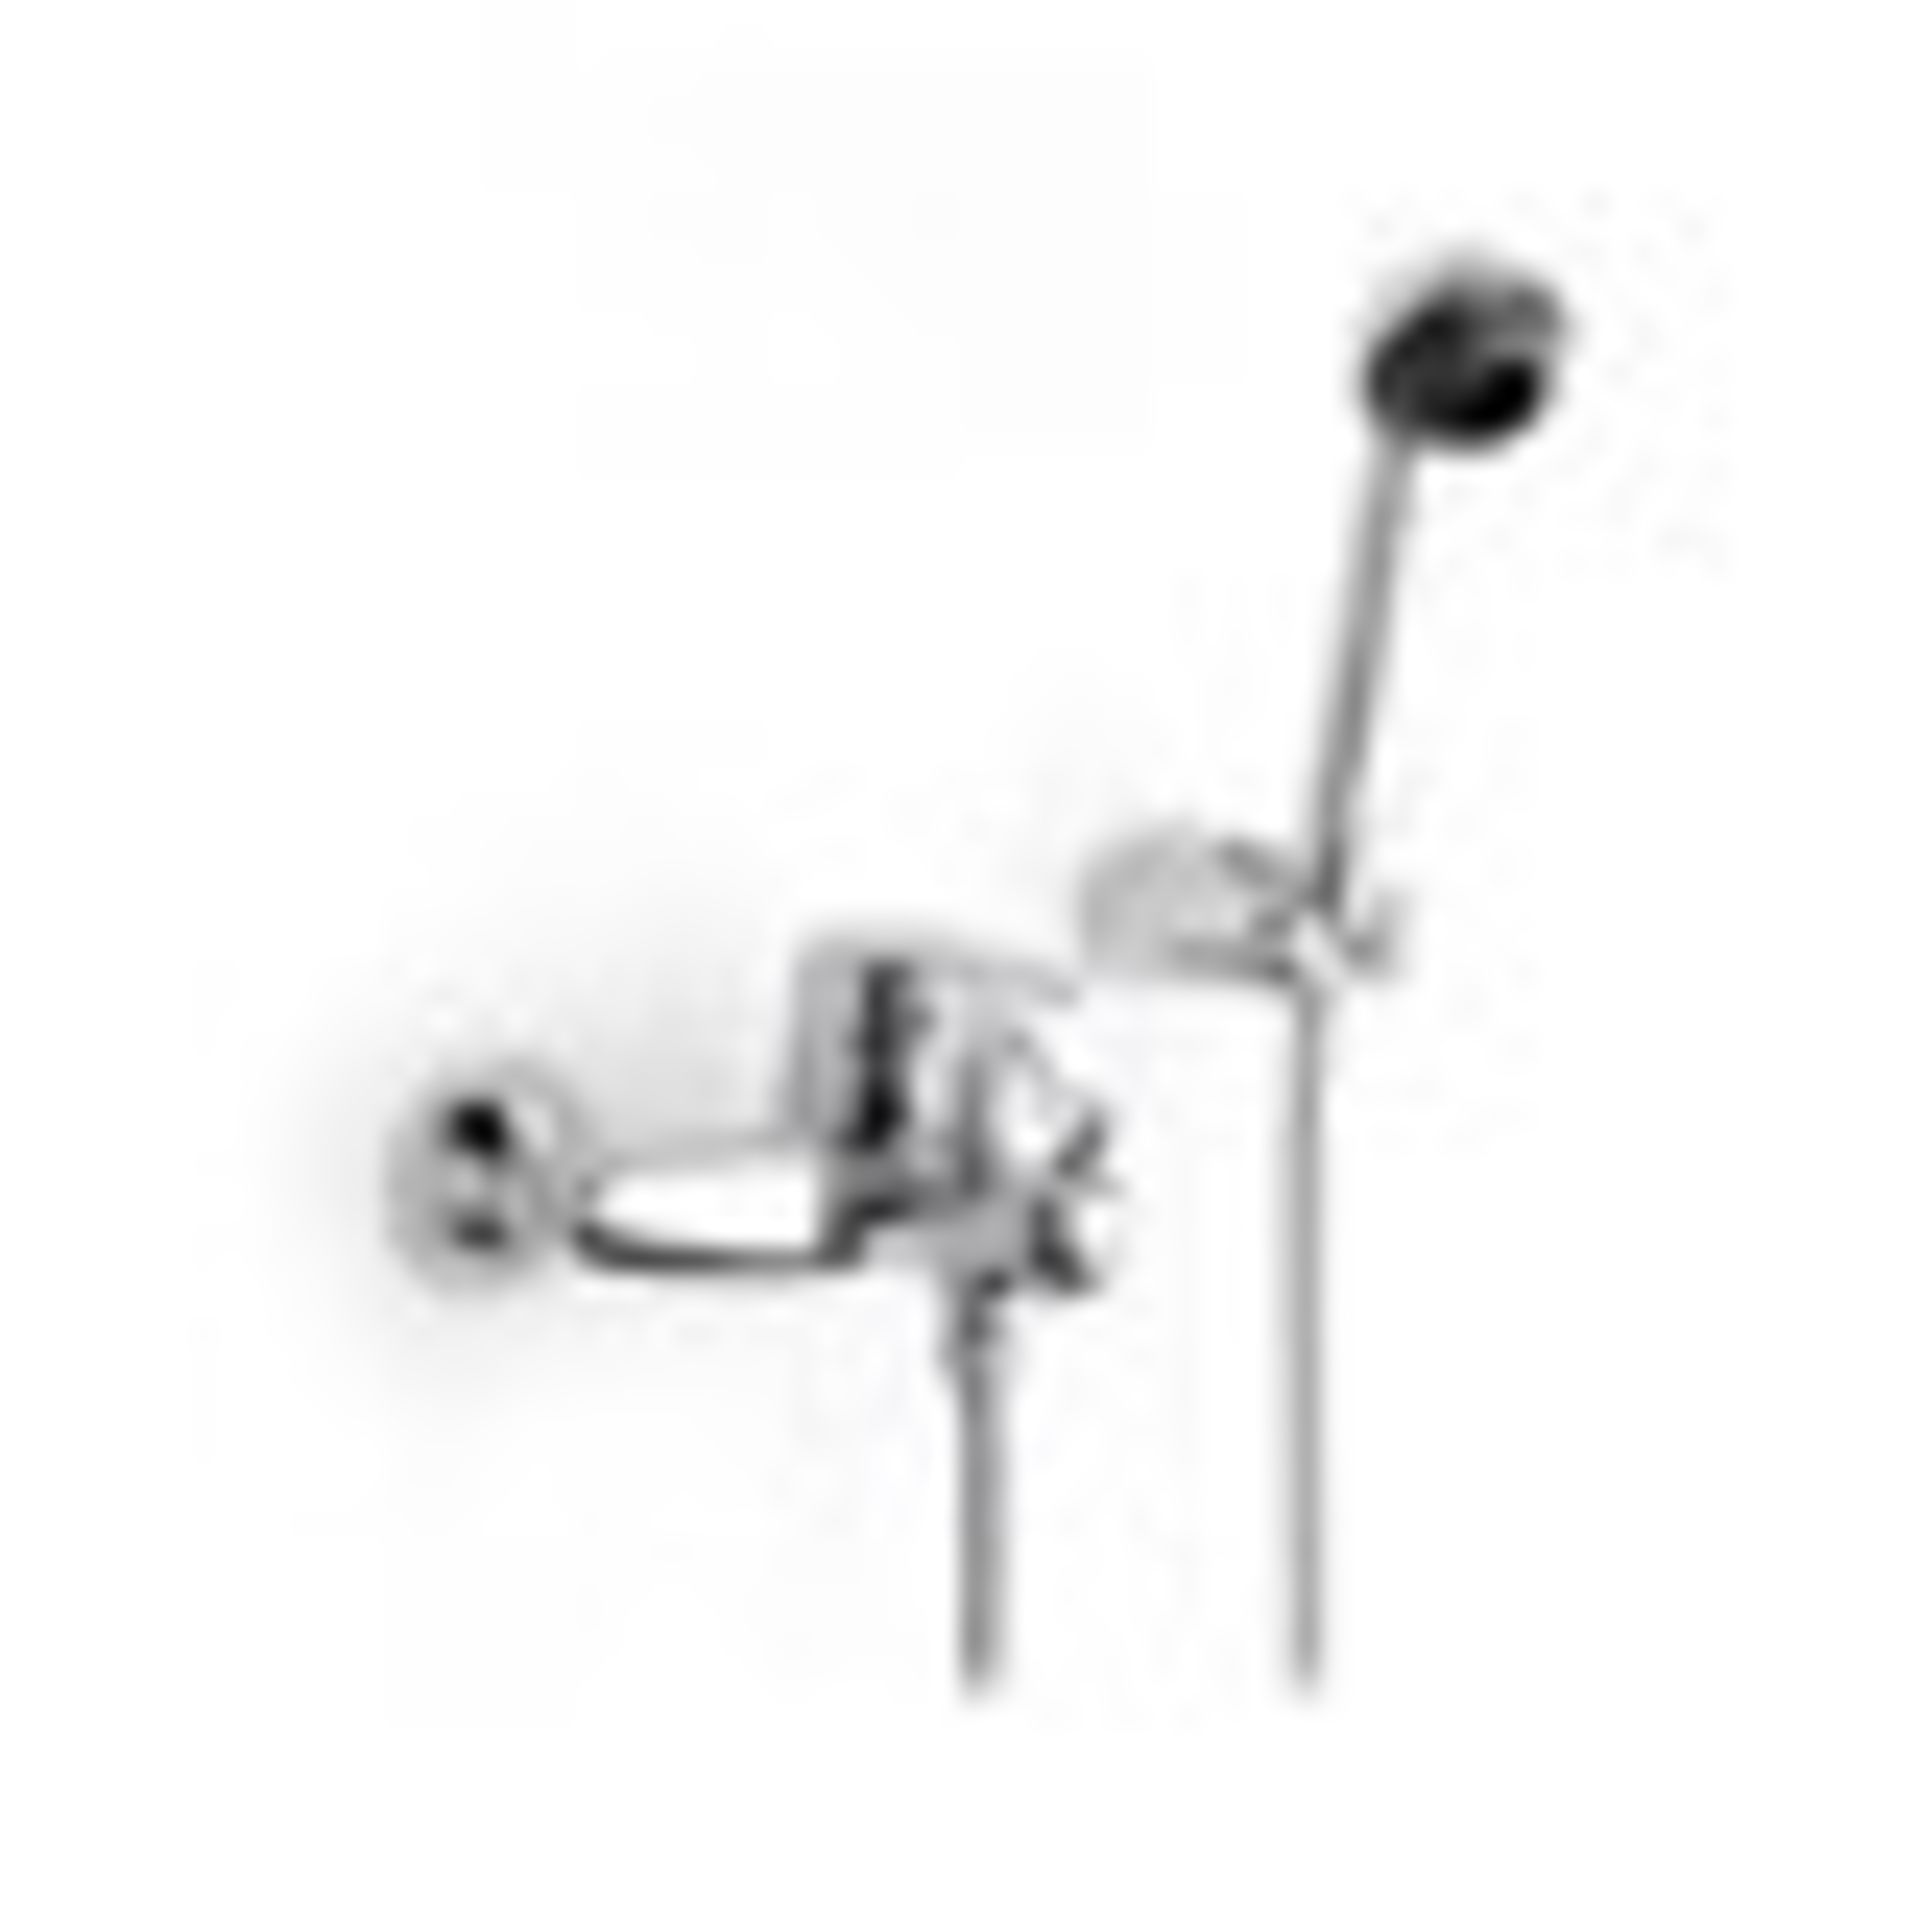 Lot 21 - Roca Victoria-N 5A0125C00 chrome wall mounted bath shower mixer. New & boxed, RRP £177.95 on